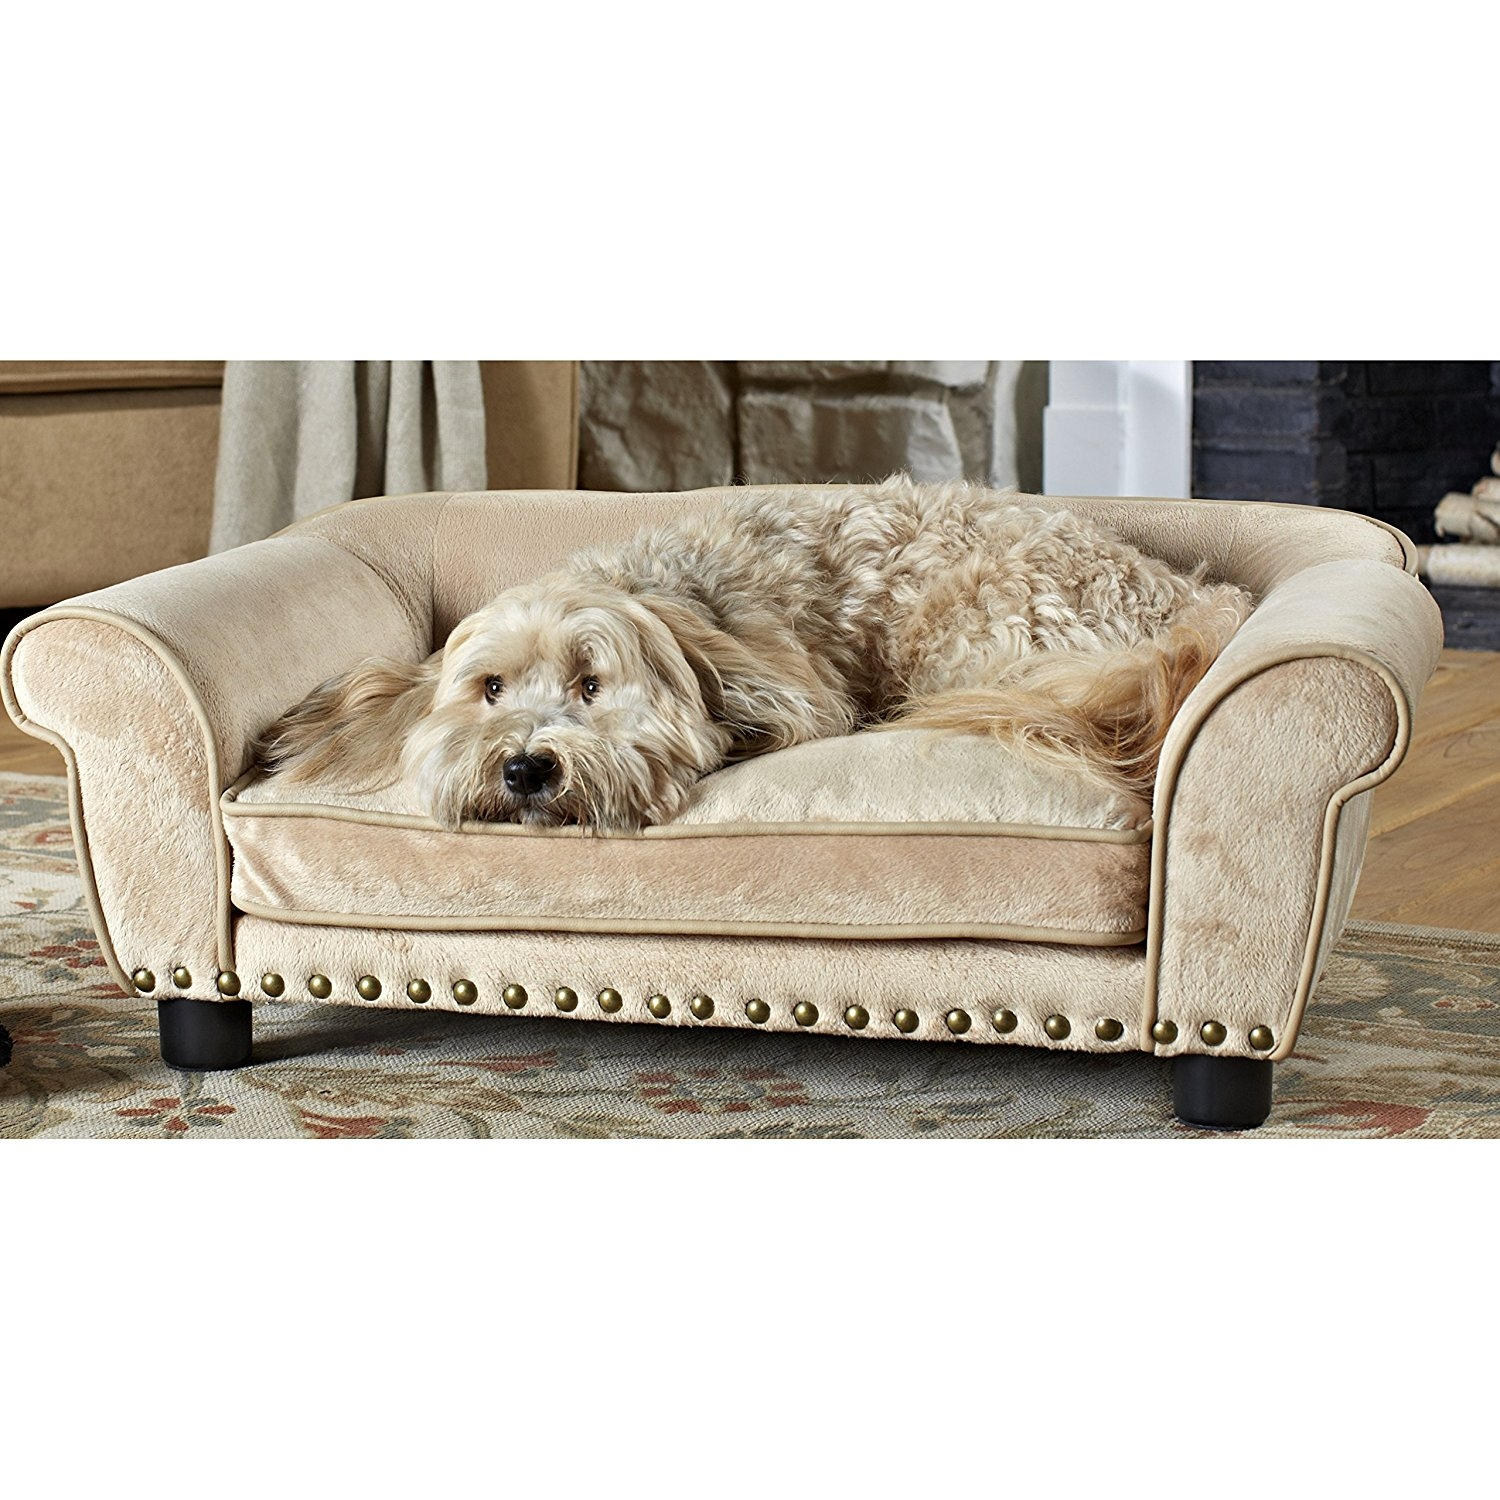 sofa dog bed skymall retailers sofas for dogs ideas